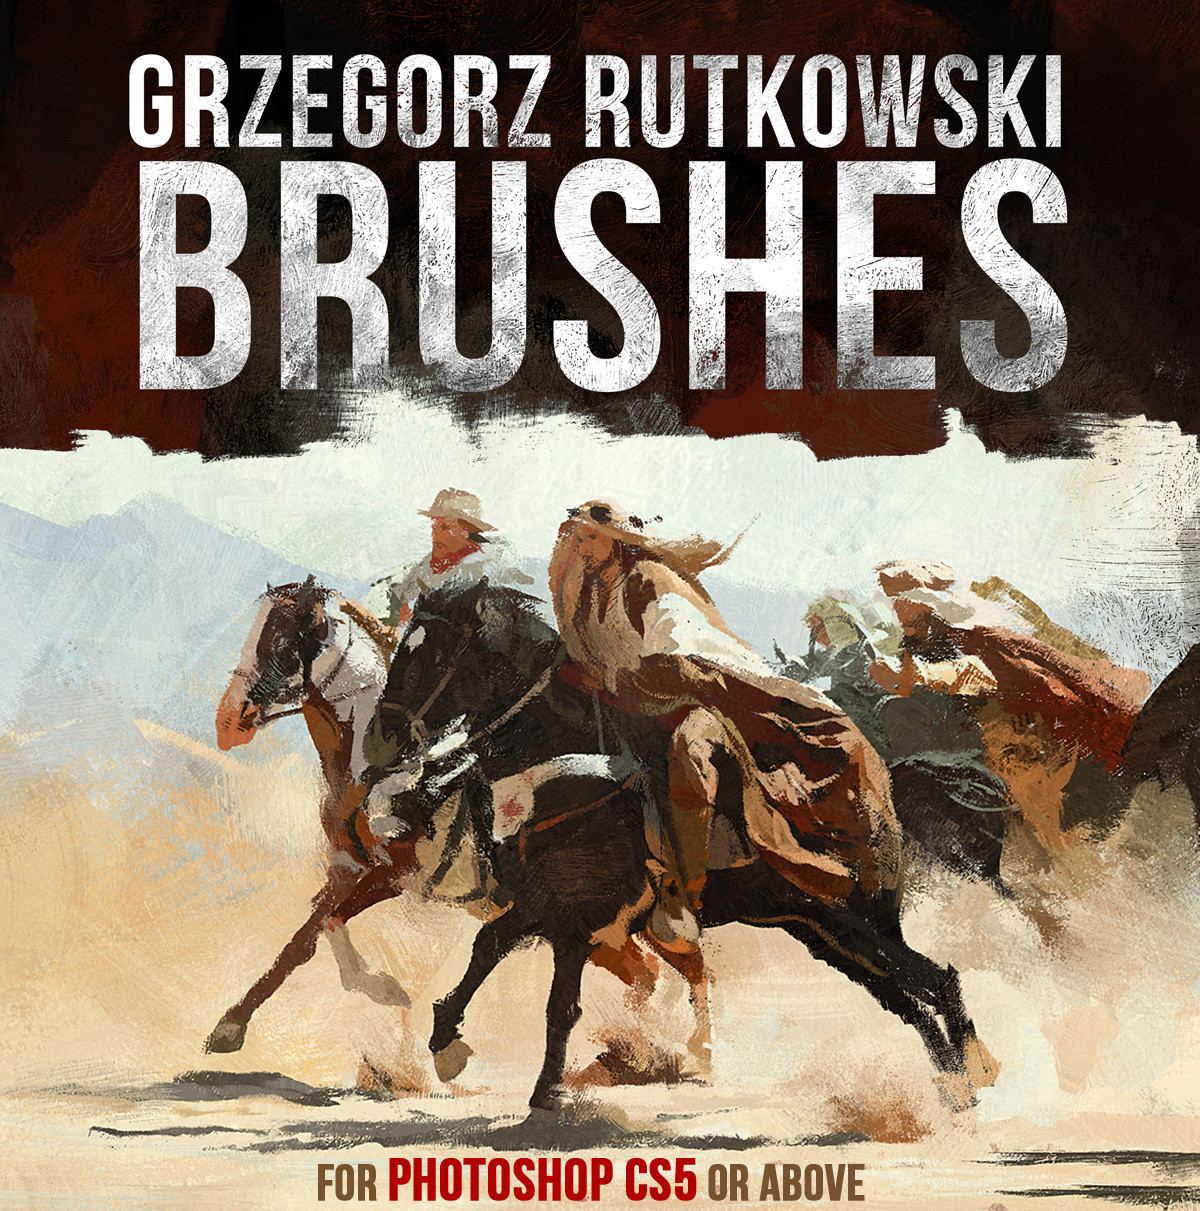 ArtStation - Brushes, Greg Rutkowski